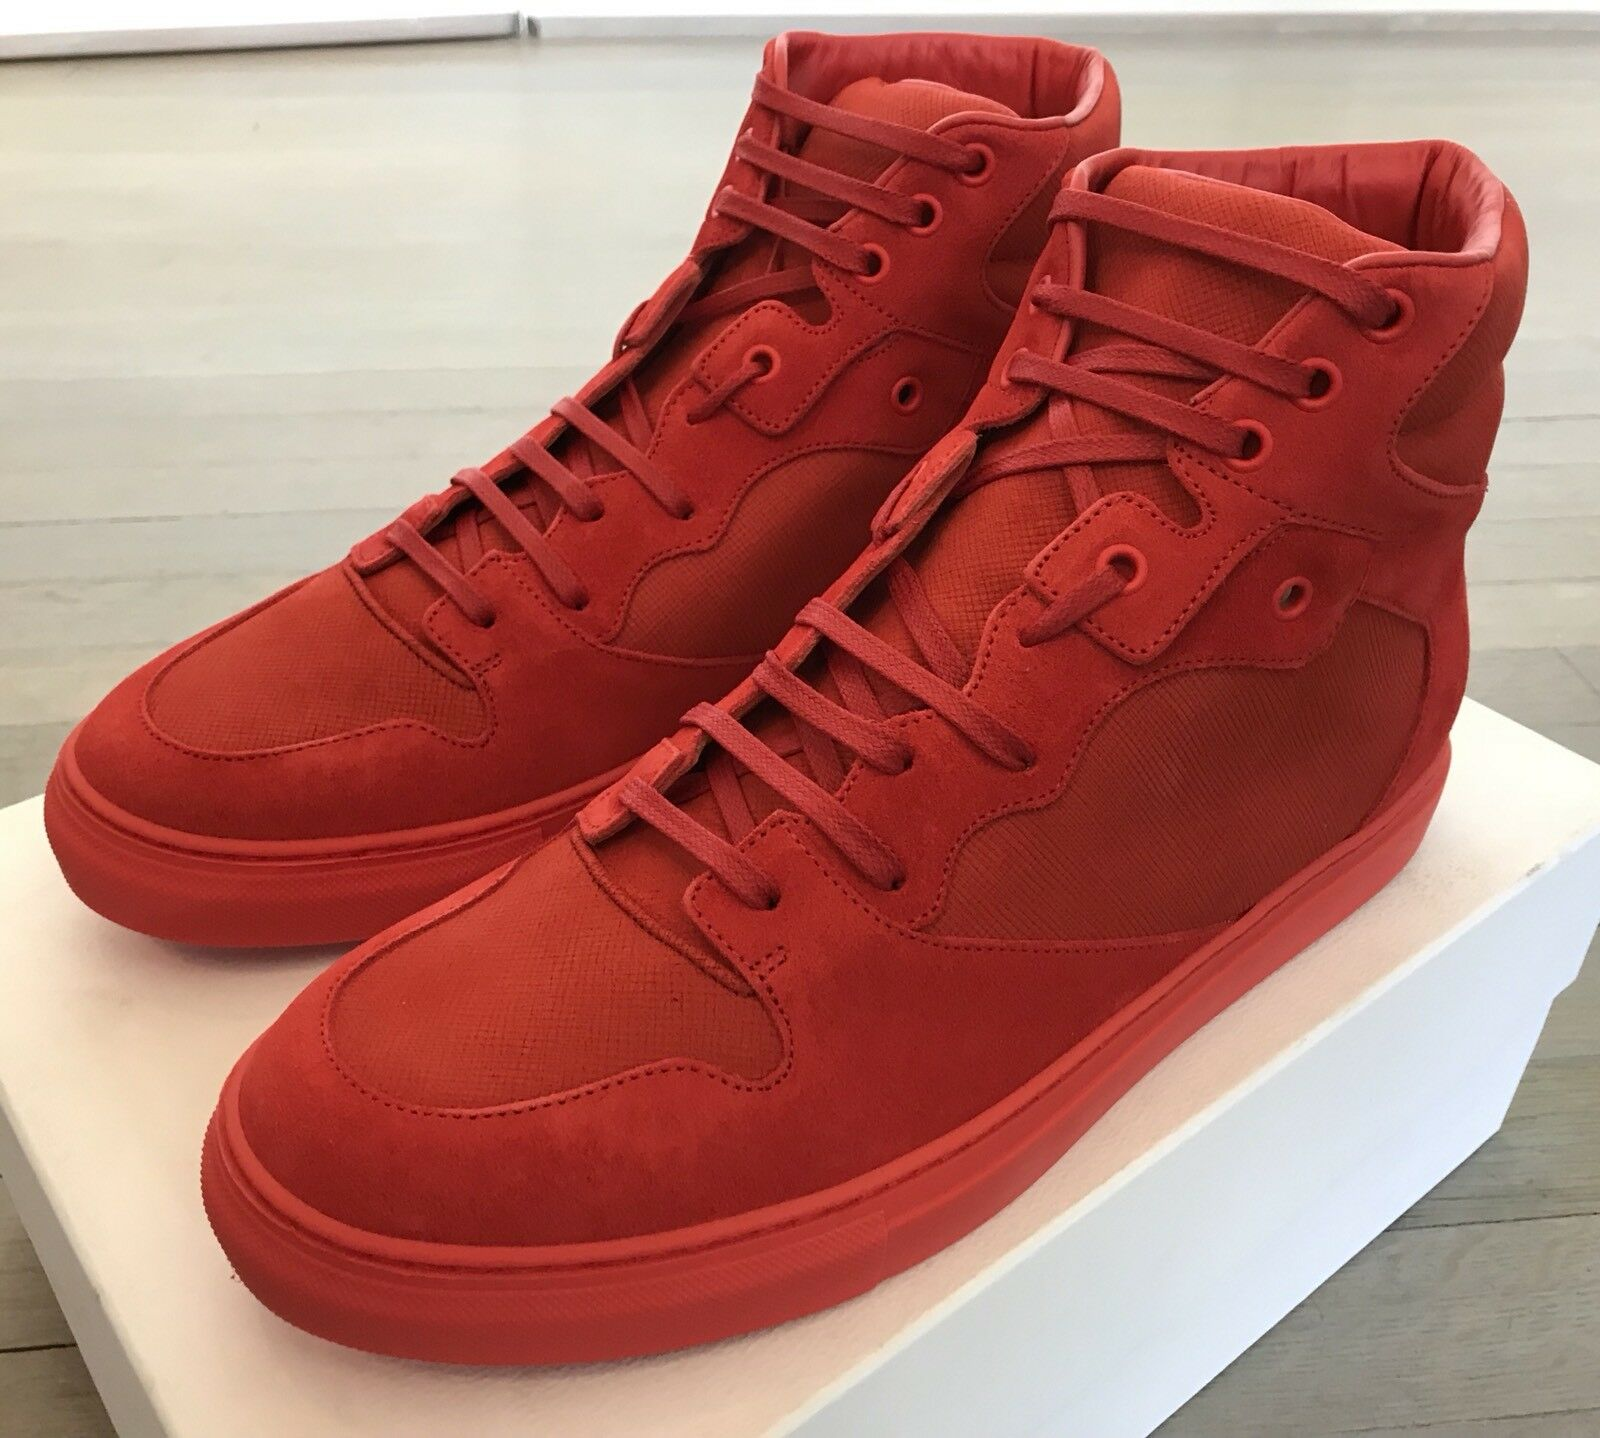 700  Balenciaga Red Nubuck High Tops Sneakers size US 10, EU 43 Made in